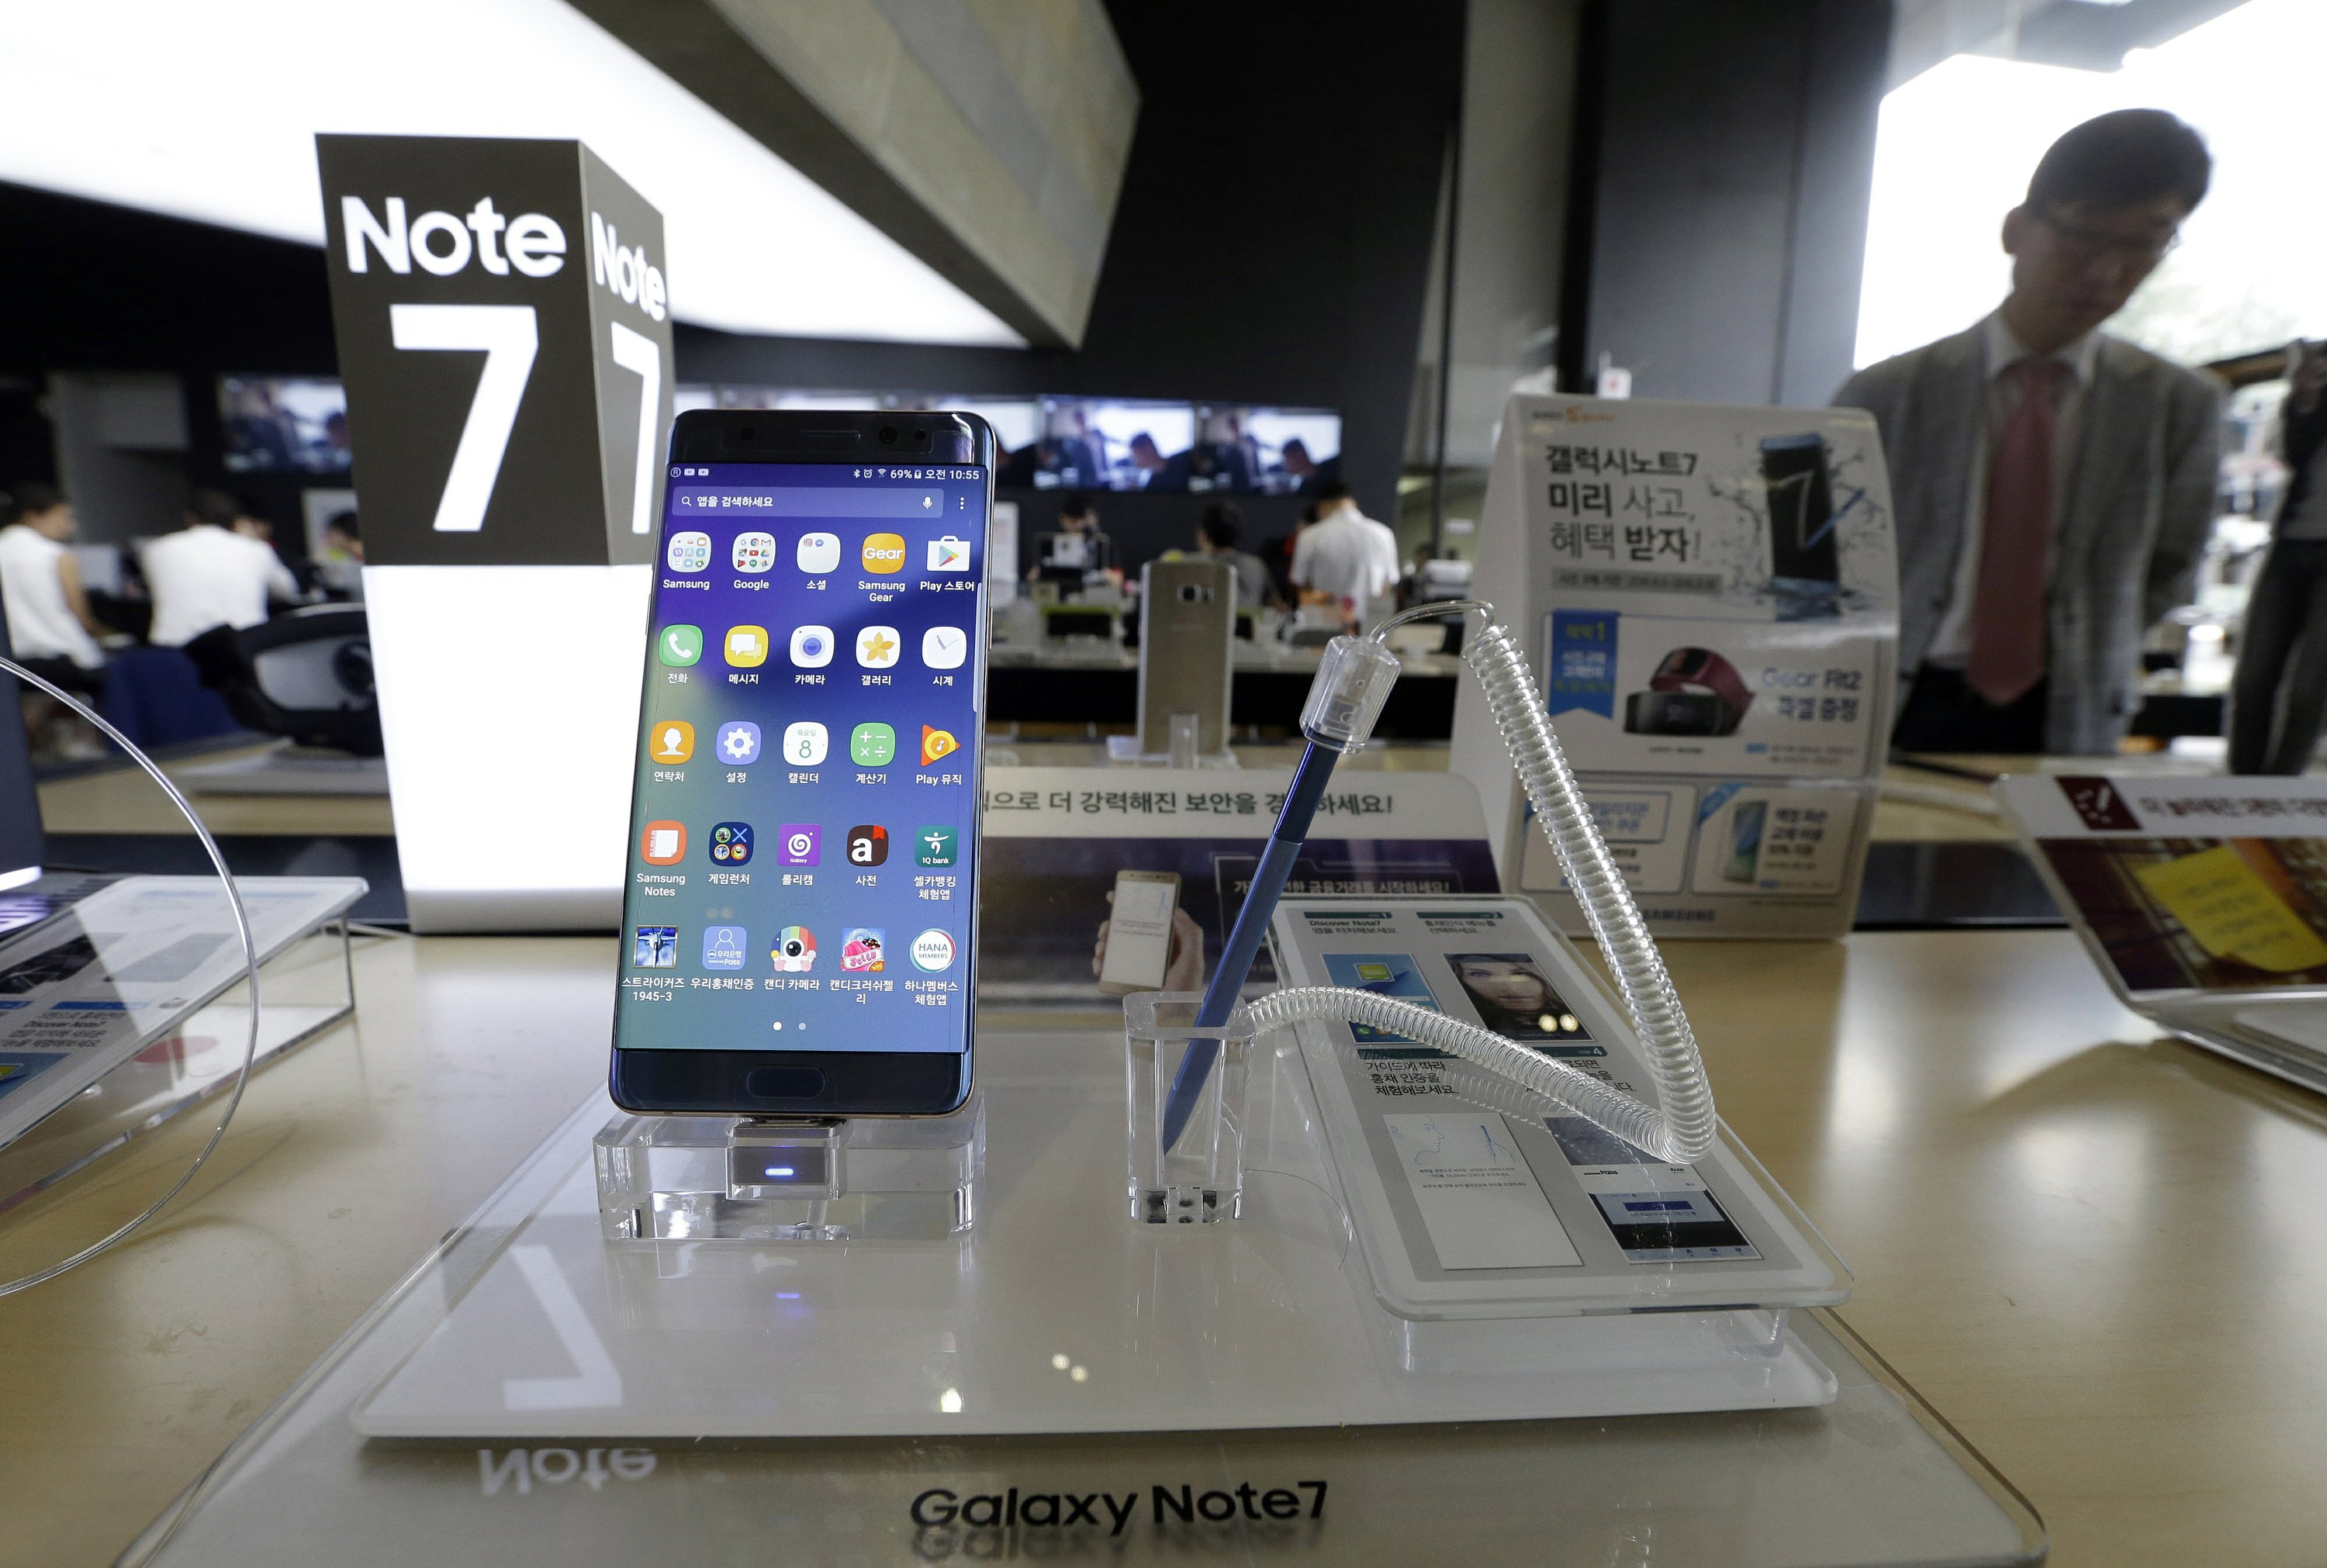 Galaxy Note 7 recall shows challenges of stronger batteries